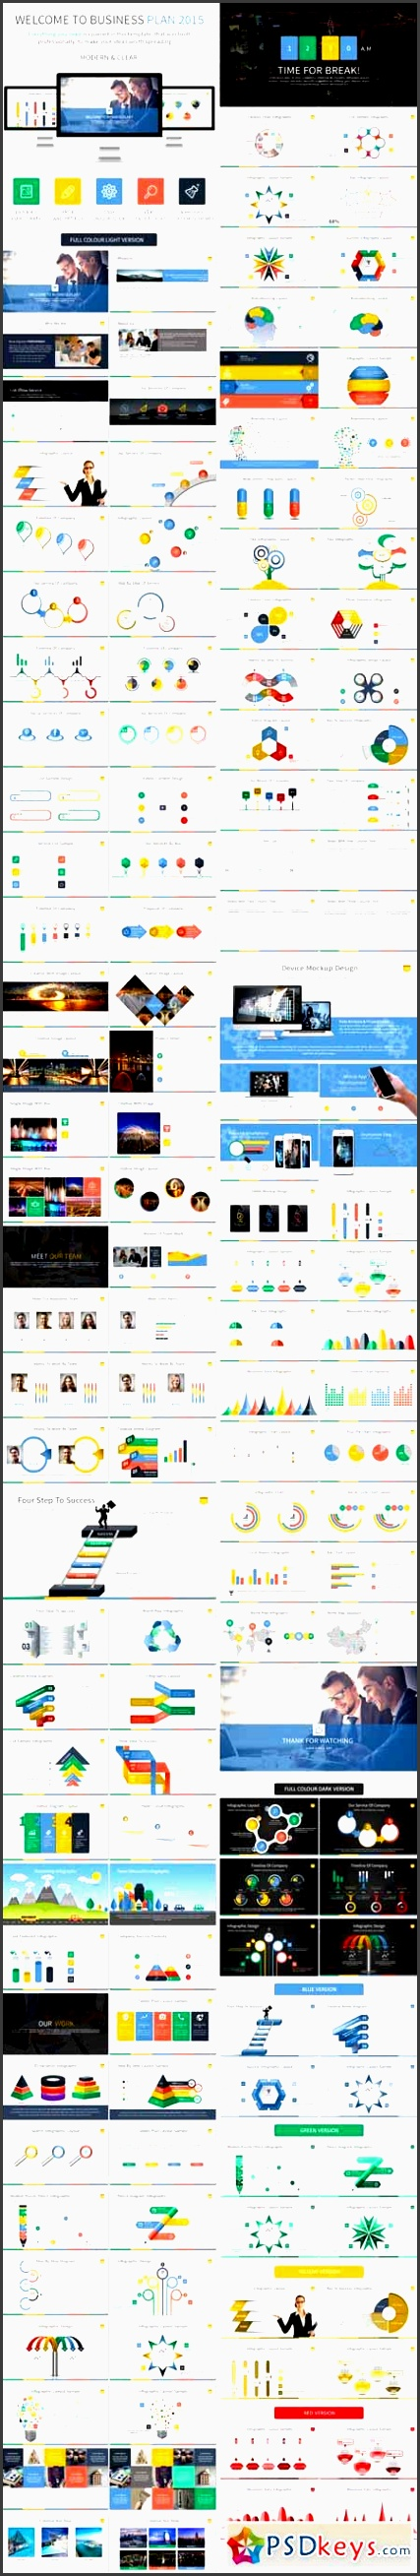 business plan 2015 powerpoint template